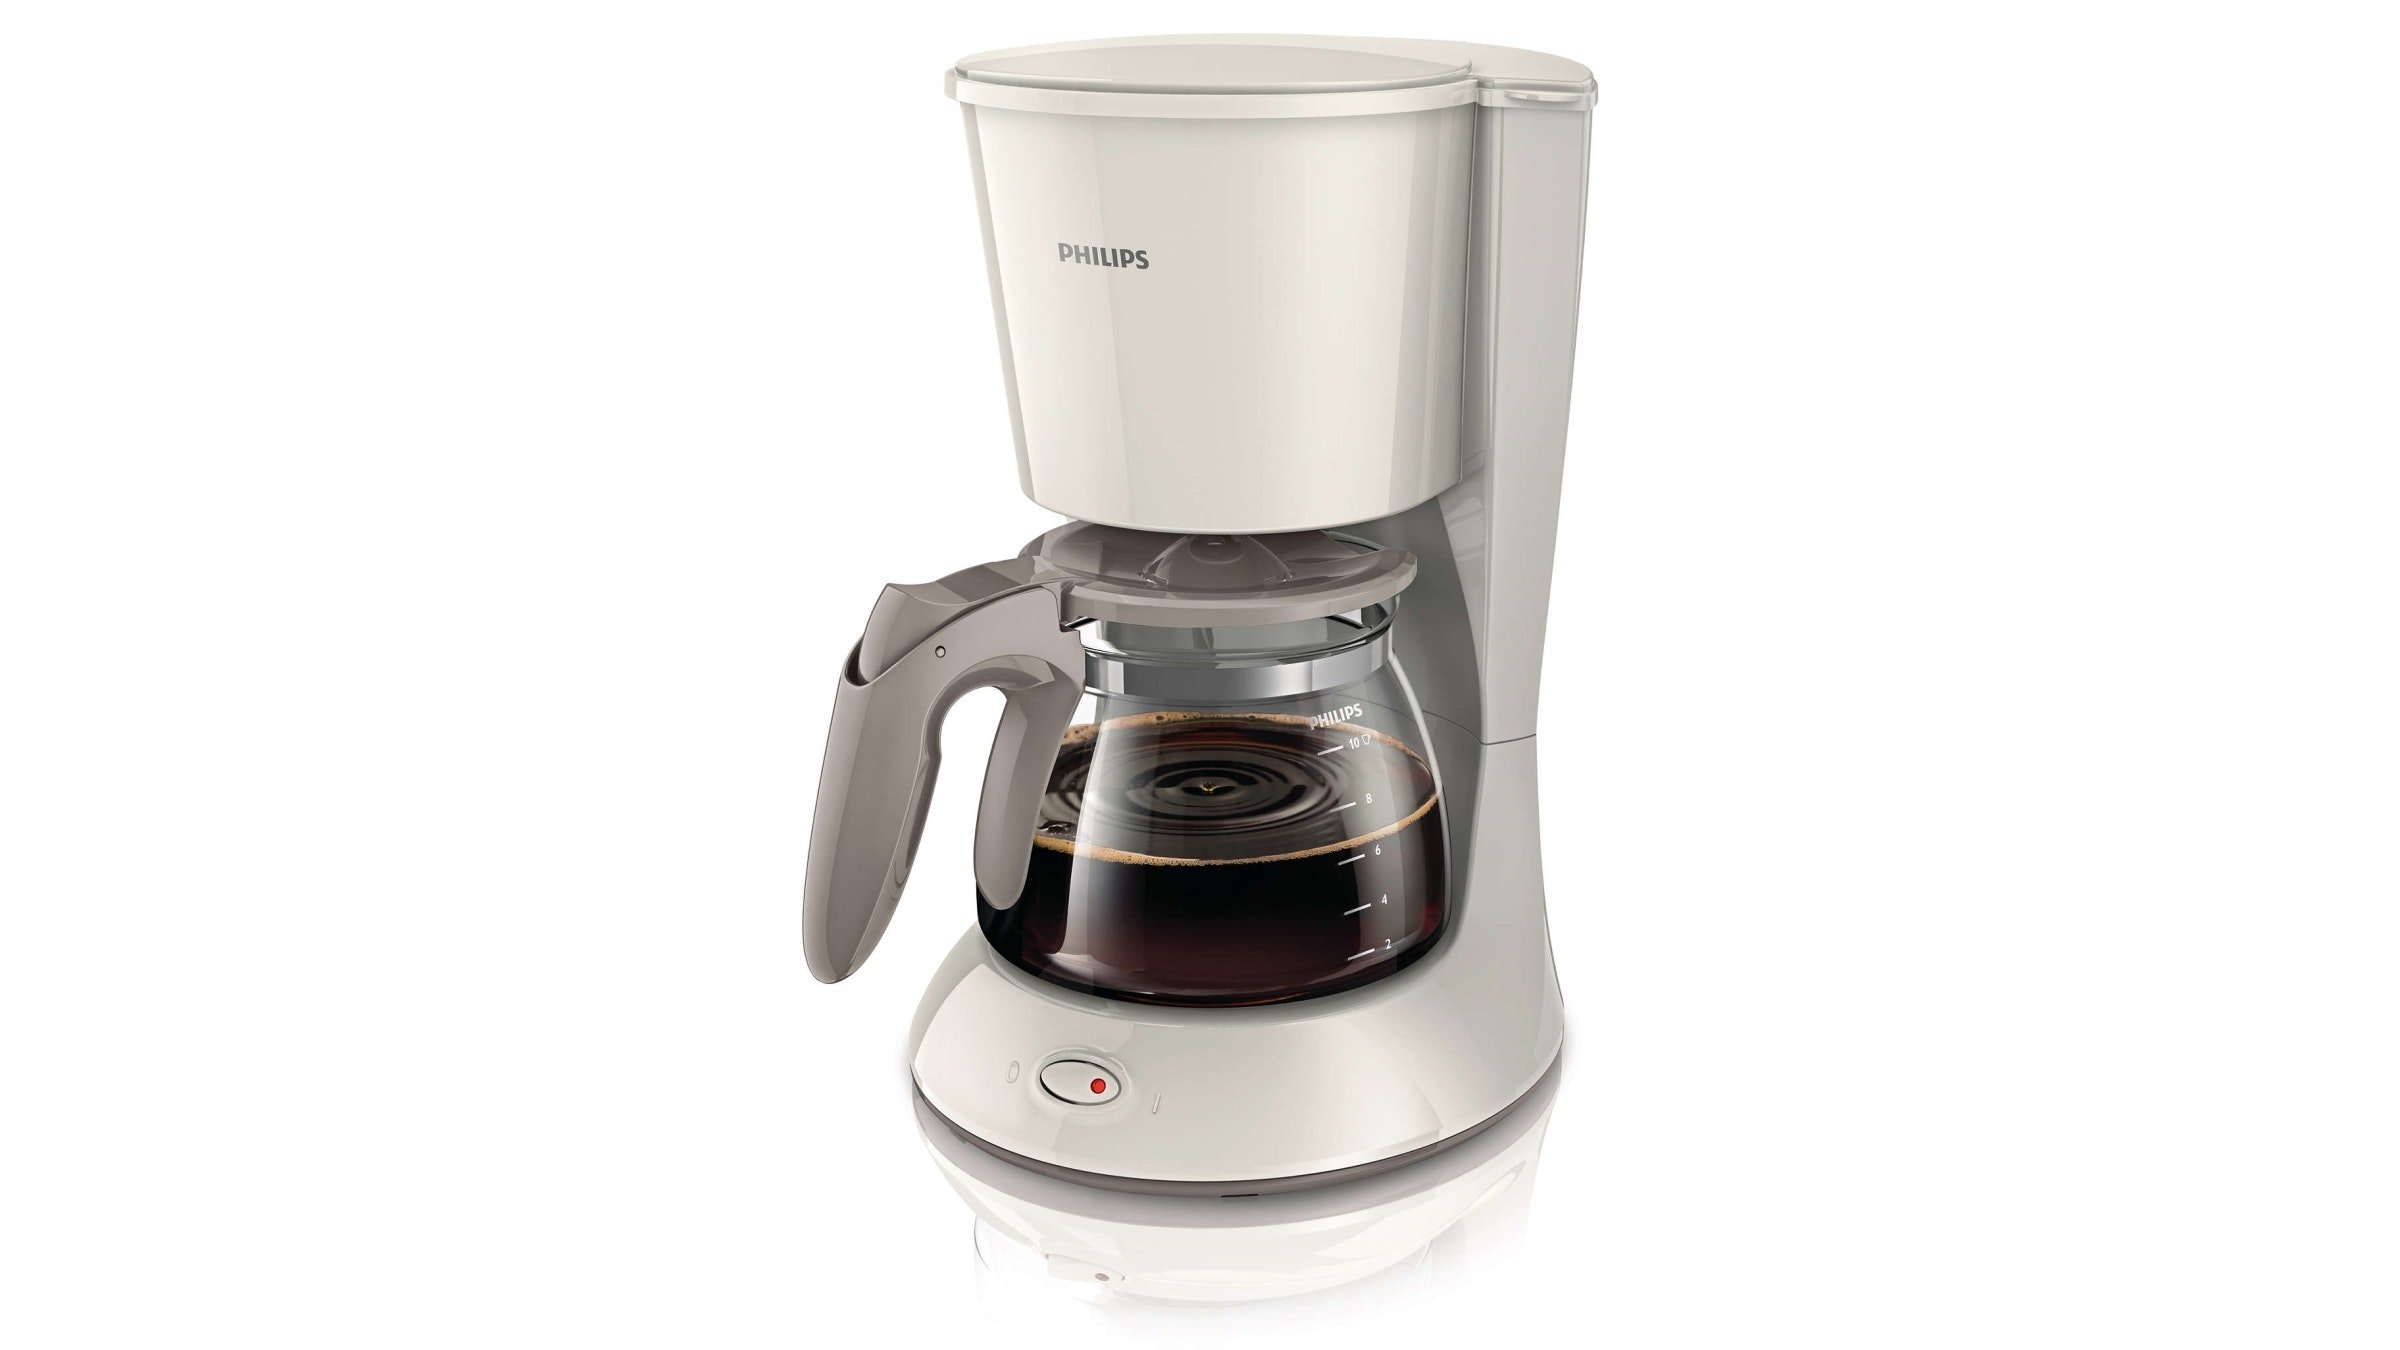 Philips Hd 7447 Daily Collection Coffee Maker Harvey